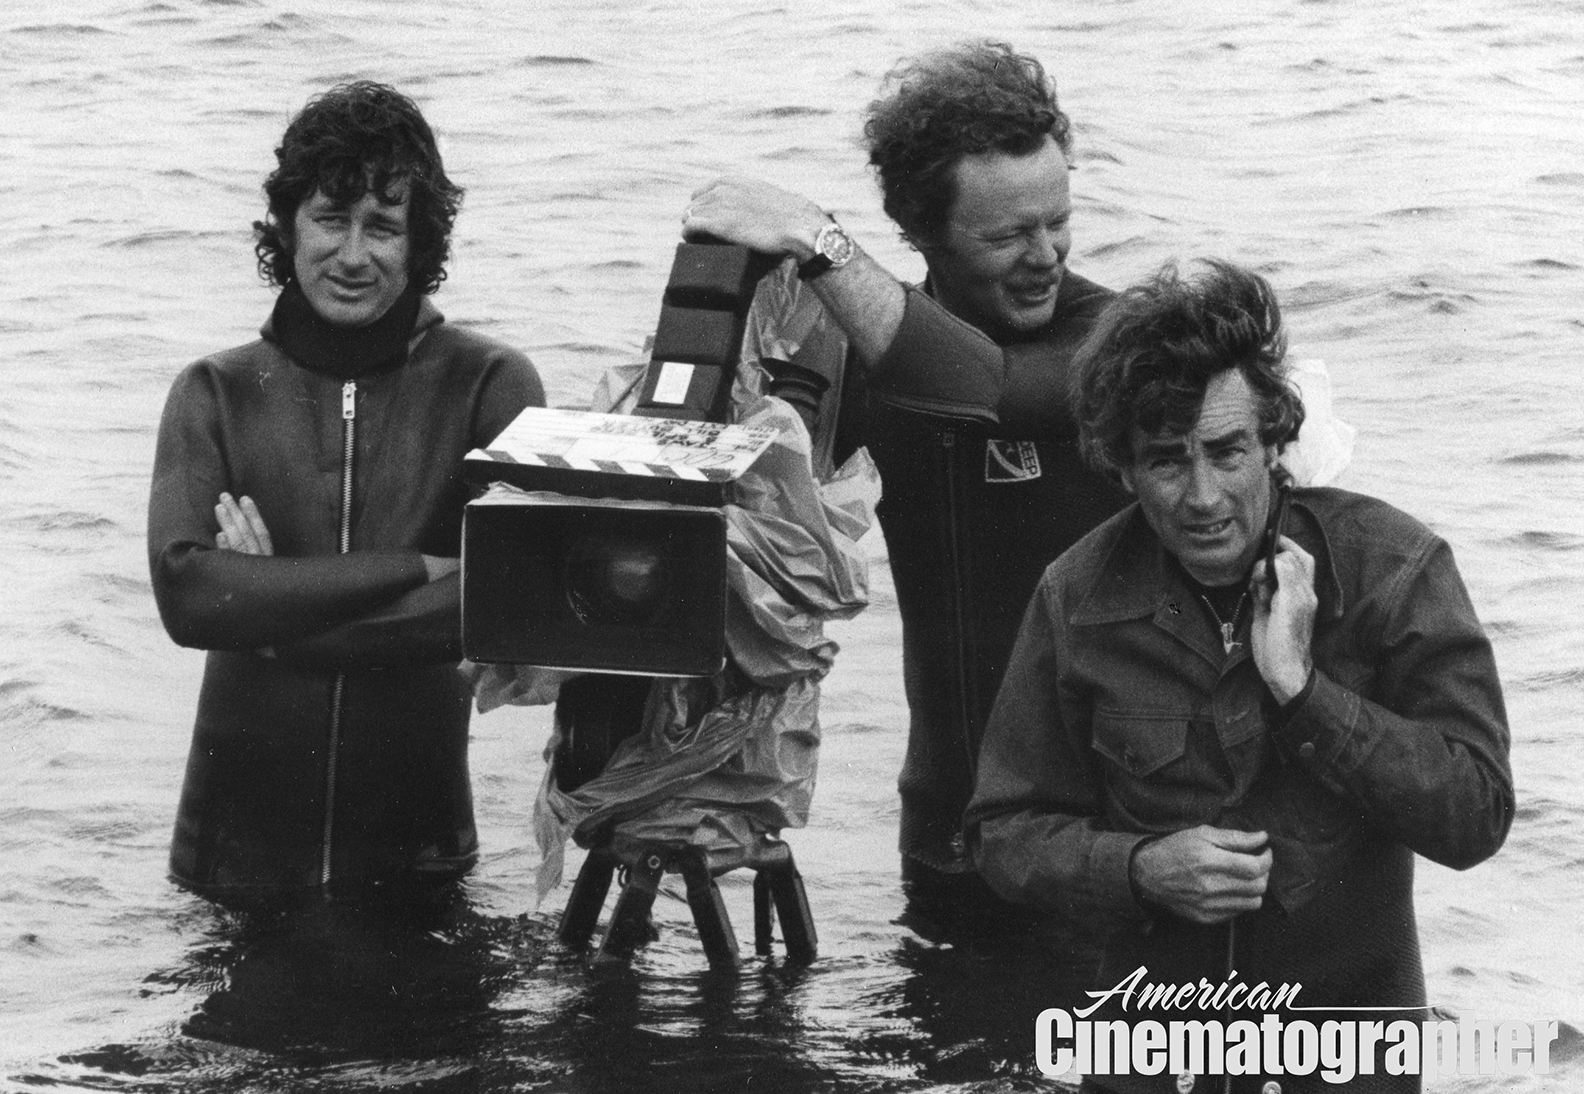 Director Steven Spielberg, operator Michael Chapman and cinematographer Bill Butler, ASC — braving the waves during the lengthy production of Jaws (1975).